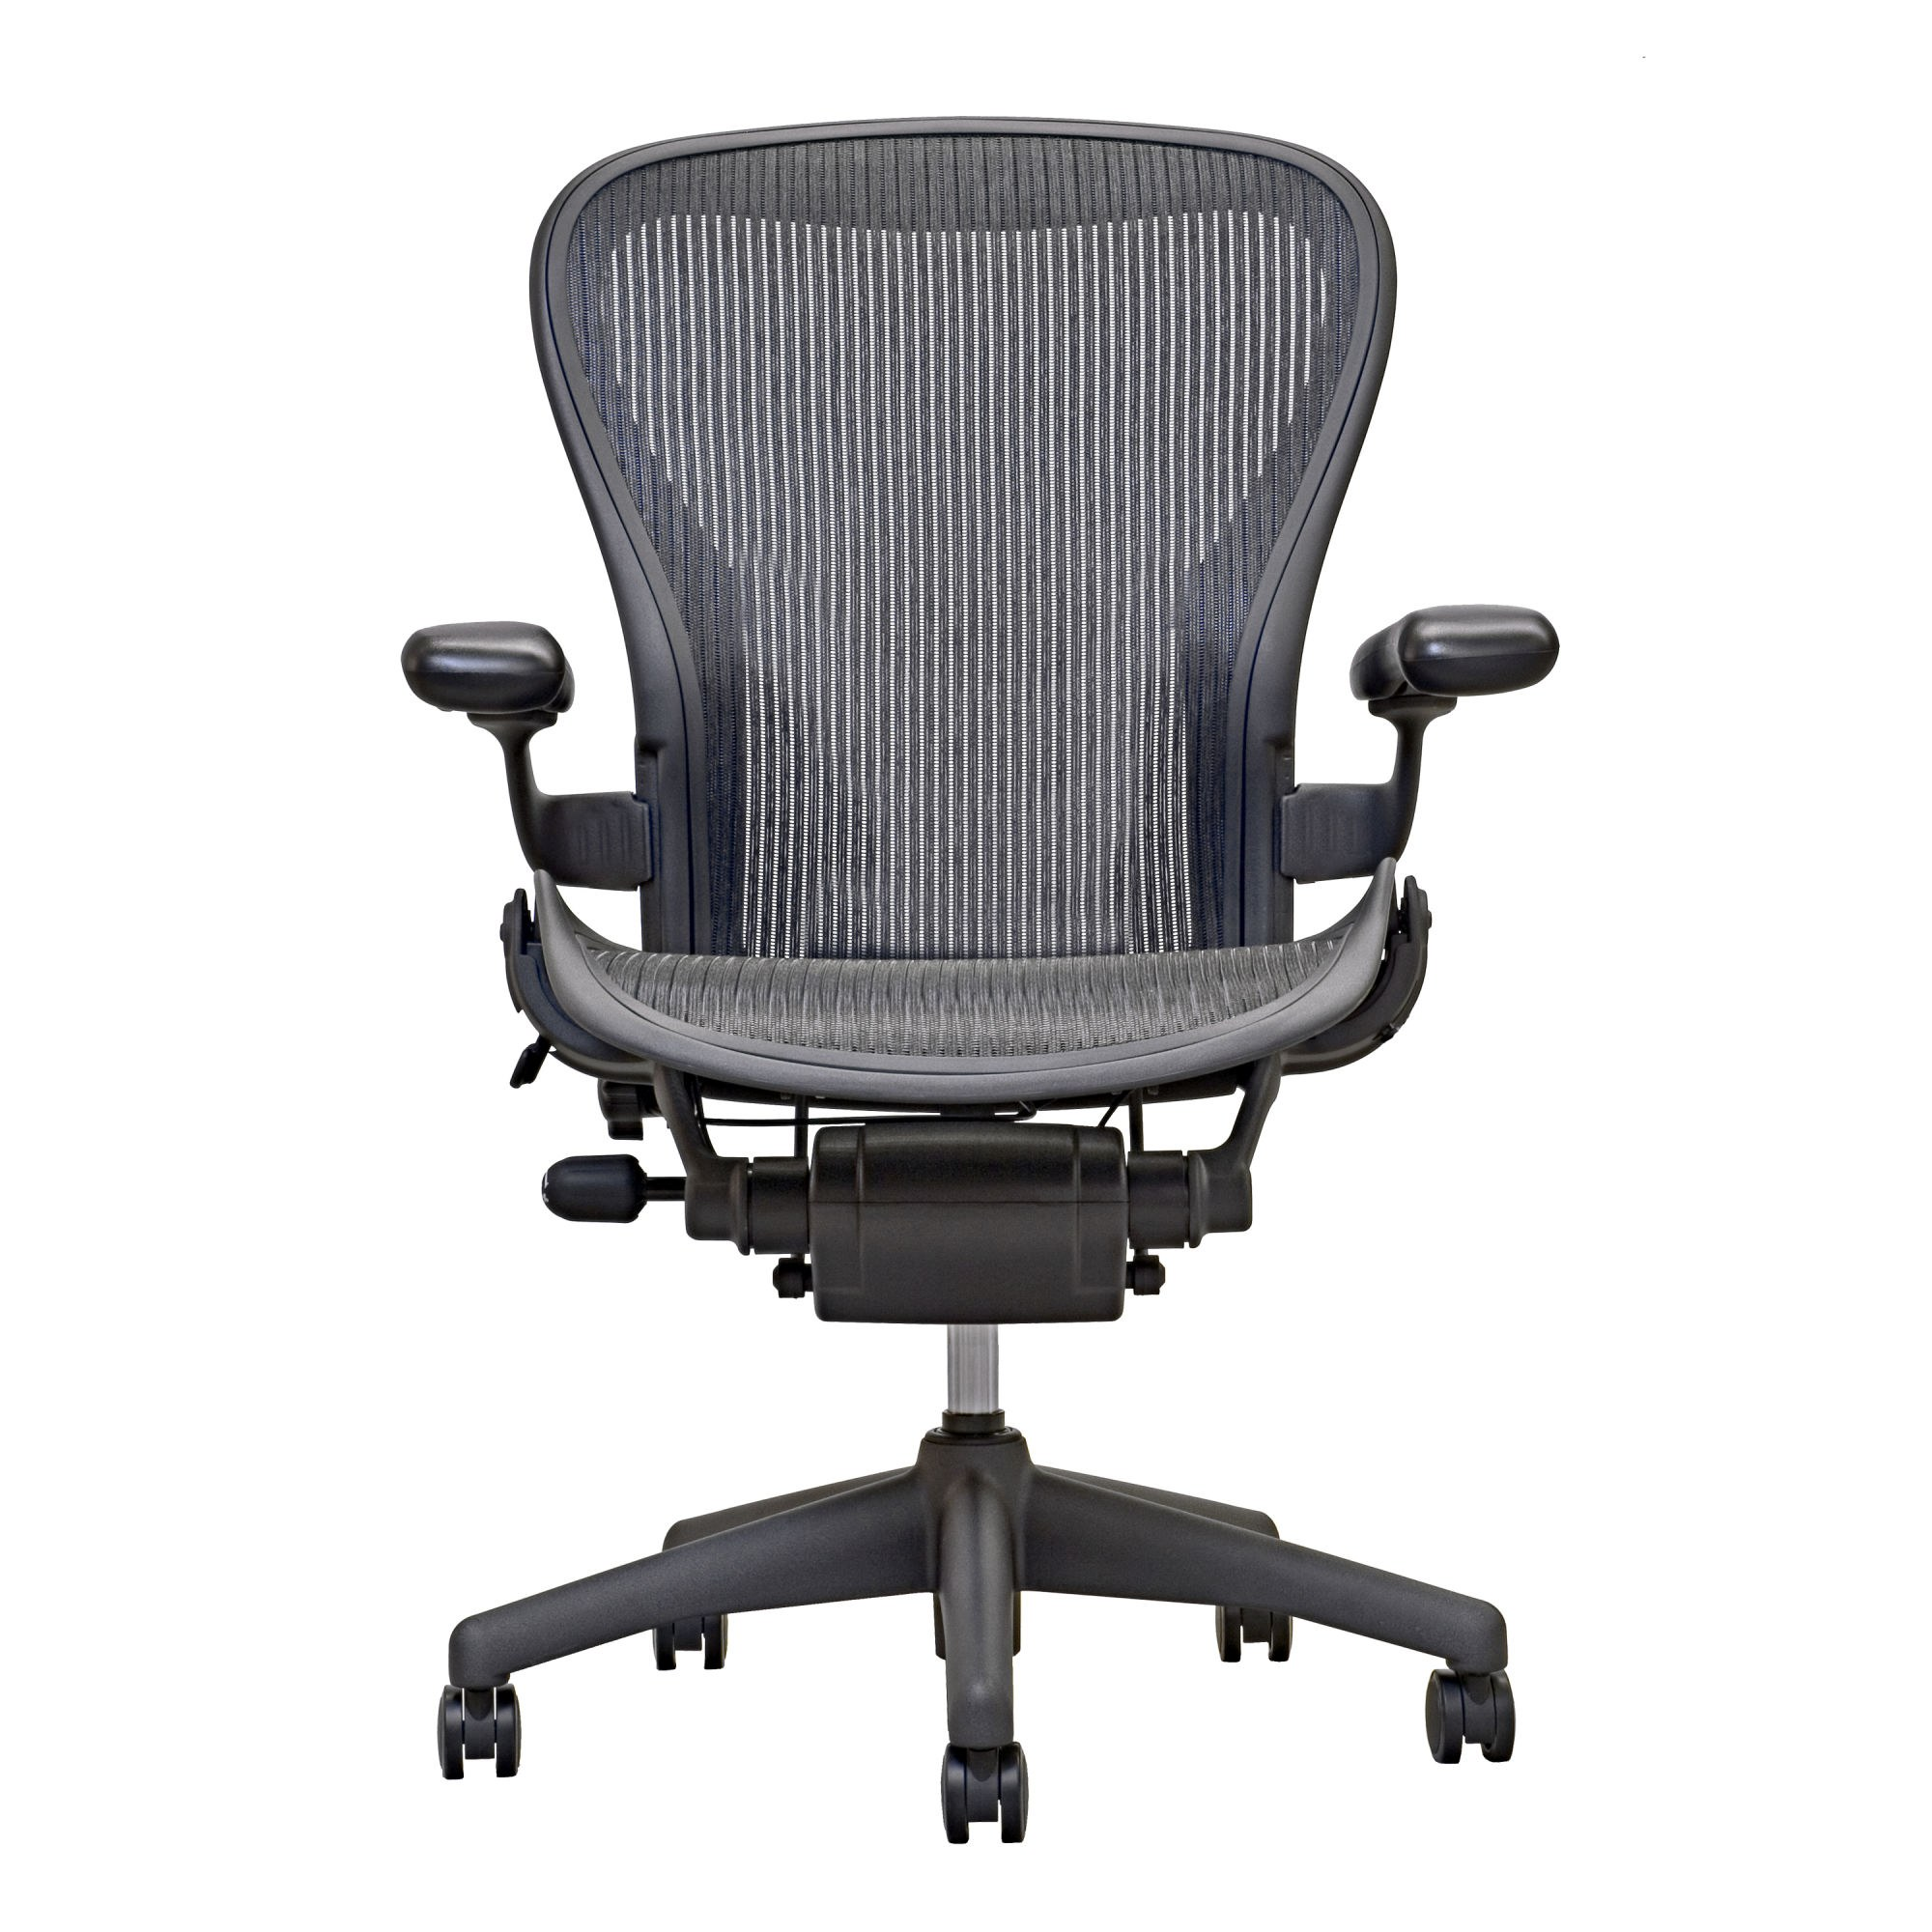 Aeron Chair Basic Model By Herman Miller Ae101out